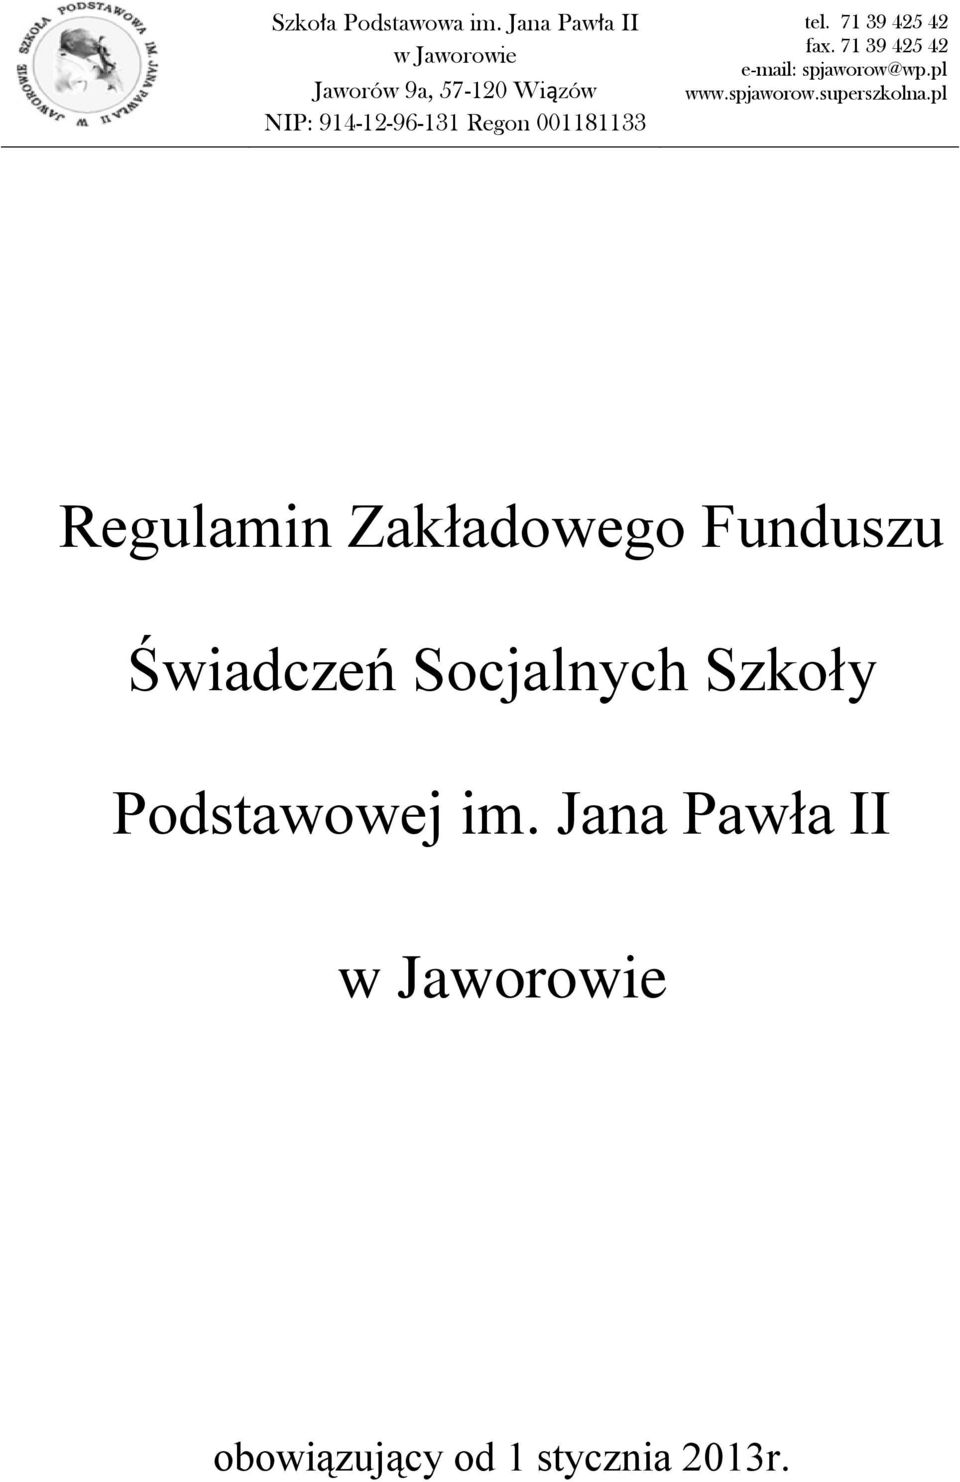 001181133 tel. 71 39 425 42 fax. 71 39 425 42 e-mail: spjaworow@wp.pl www.spjaworow.superszkolna.